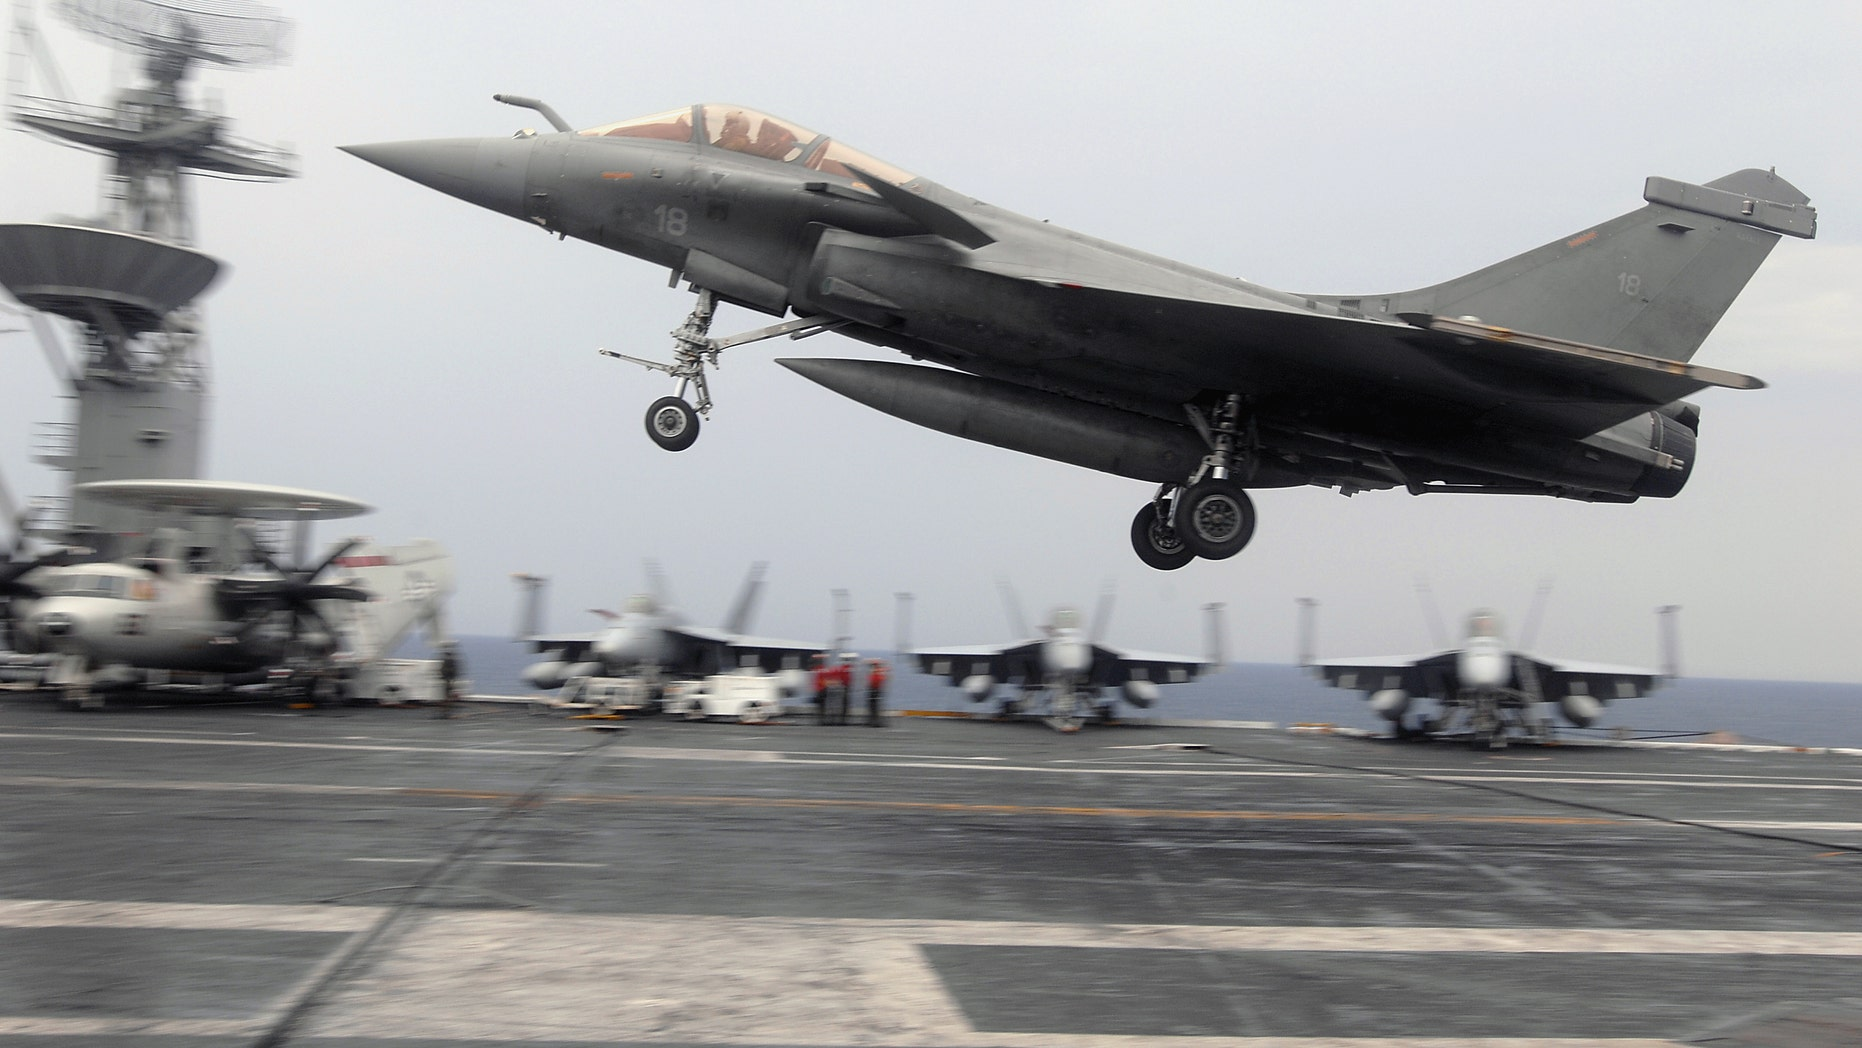 """File photo - A French F-2 Rafale fighter performs a touch-and-go during combined French and American carrier qualifications aboard the aircraft carrier USS Theodore Roosevelt (CVN 71). The Theodore Roosevelt Carrier Strike Group is participating in Joint Task Force Exercise """"Operation Brimstone"""" off the Atlantic coast. (U.S. Navy photo by Mass Communication Specialist 3rd Class Sheldon Rowley/Released)"""